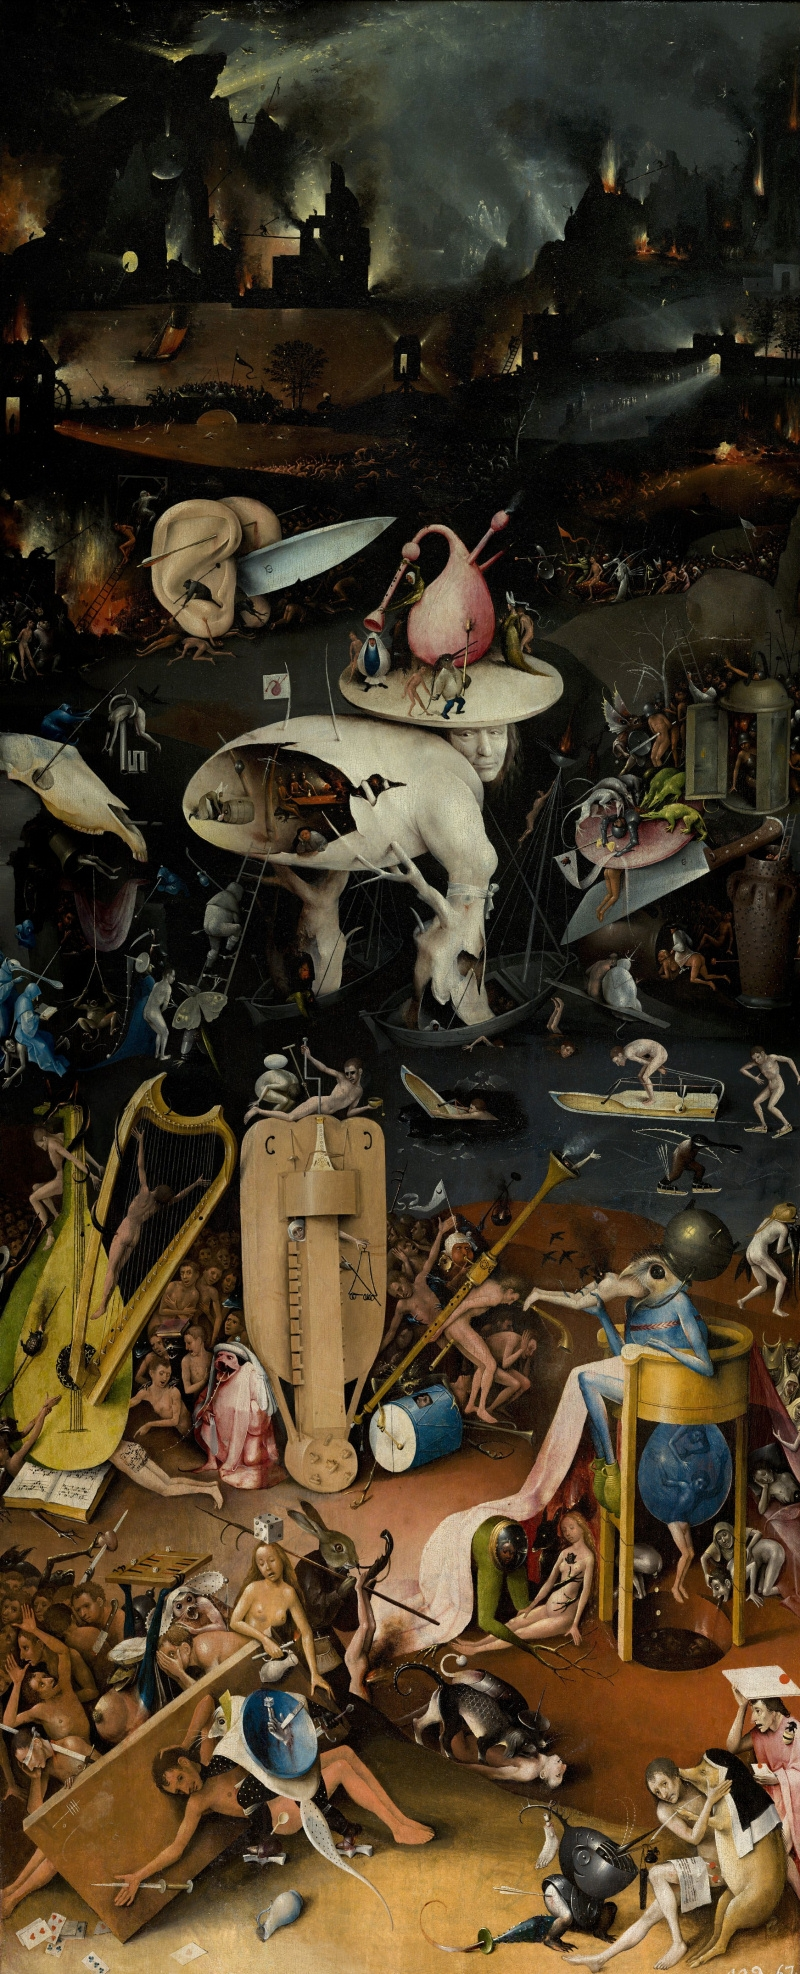 Return to the nightosphere tumblr - Hieronymus bosch garden of earthly delights ...